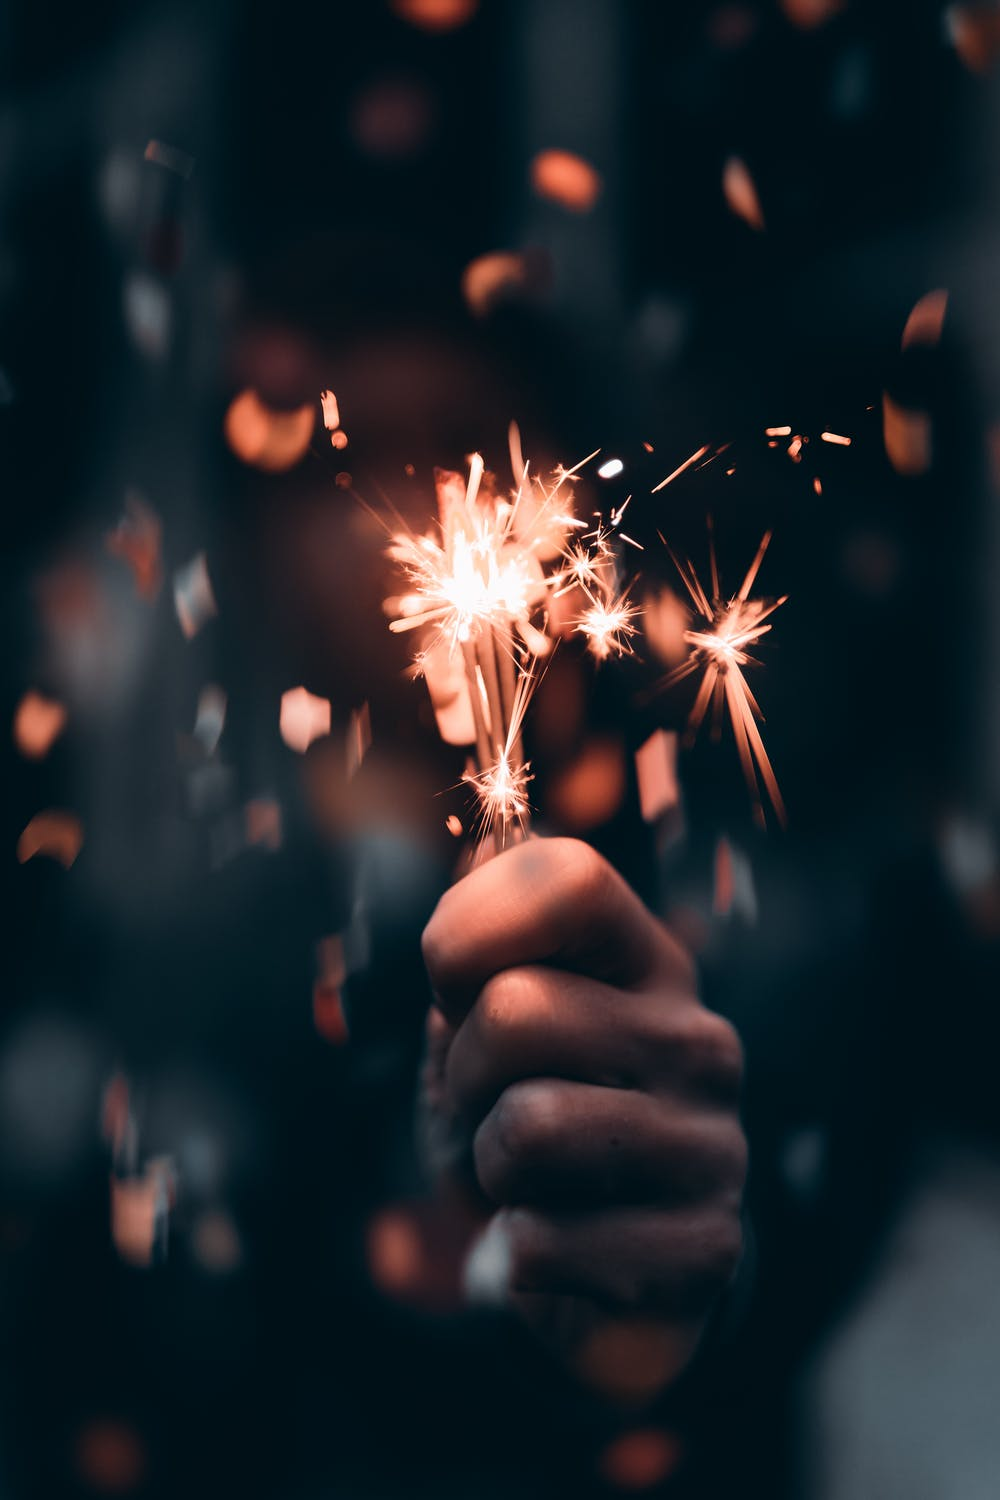 Sparklers wallpaper aesthetic for iphone